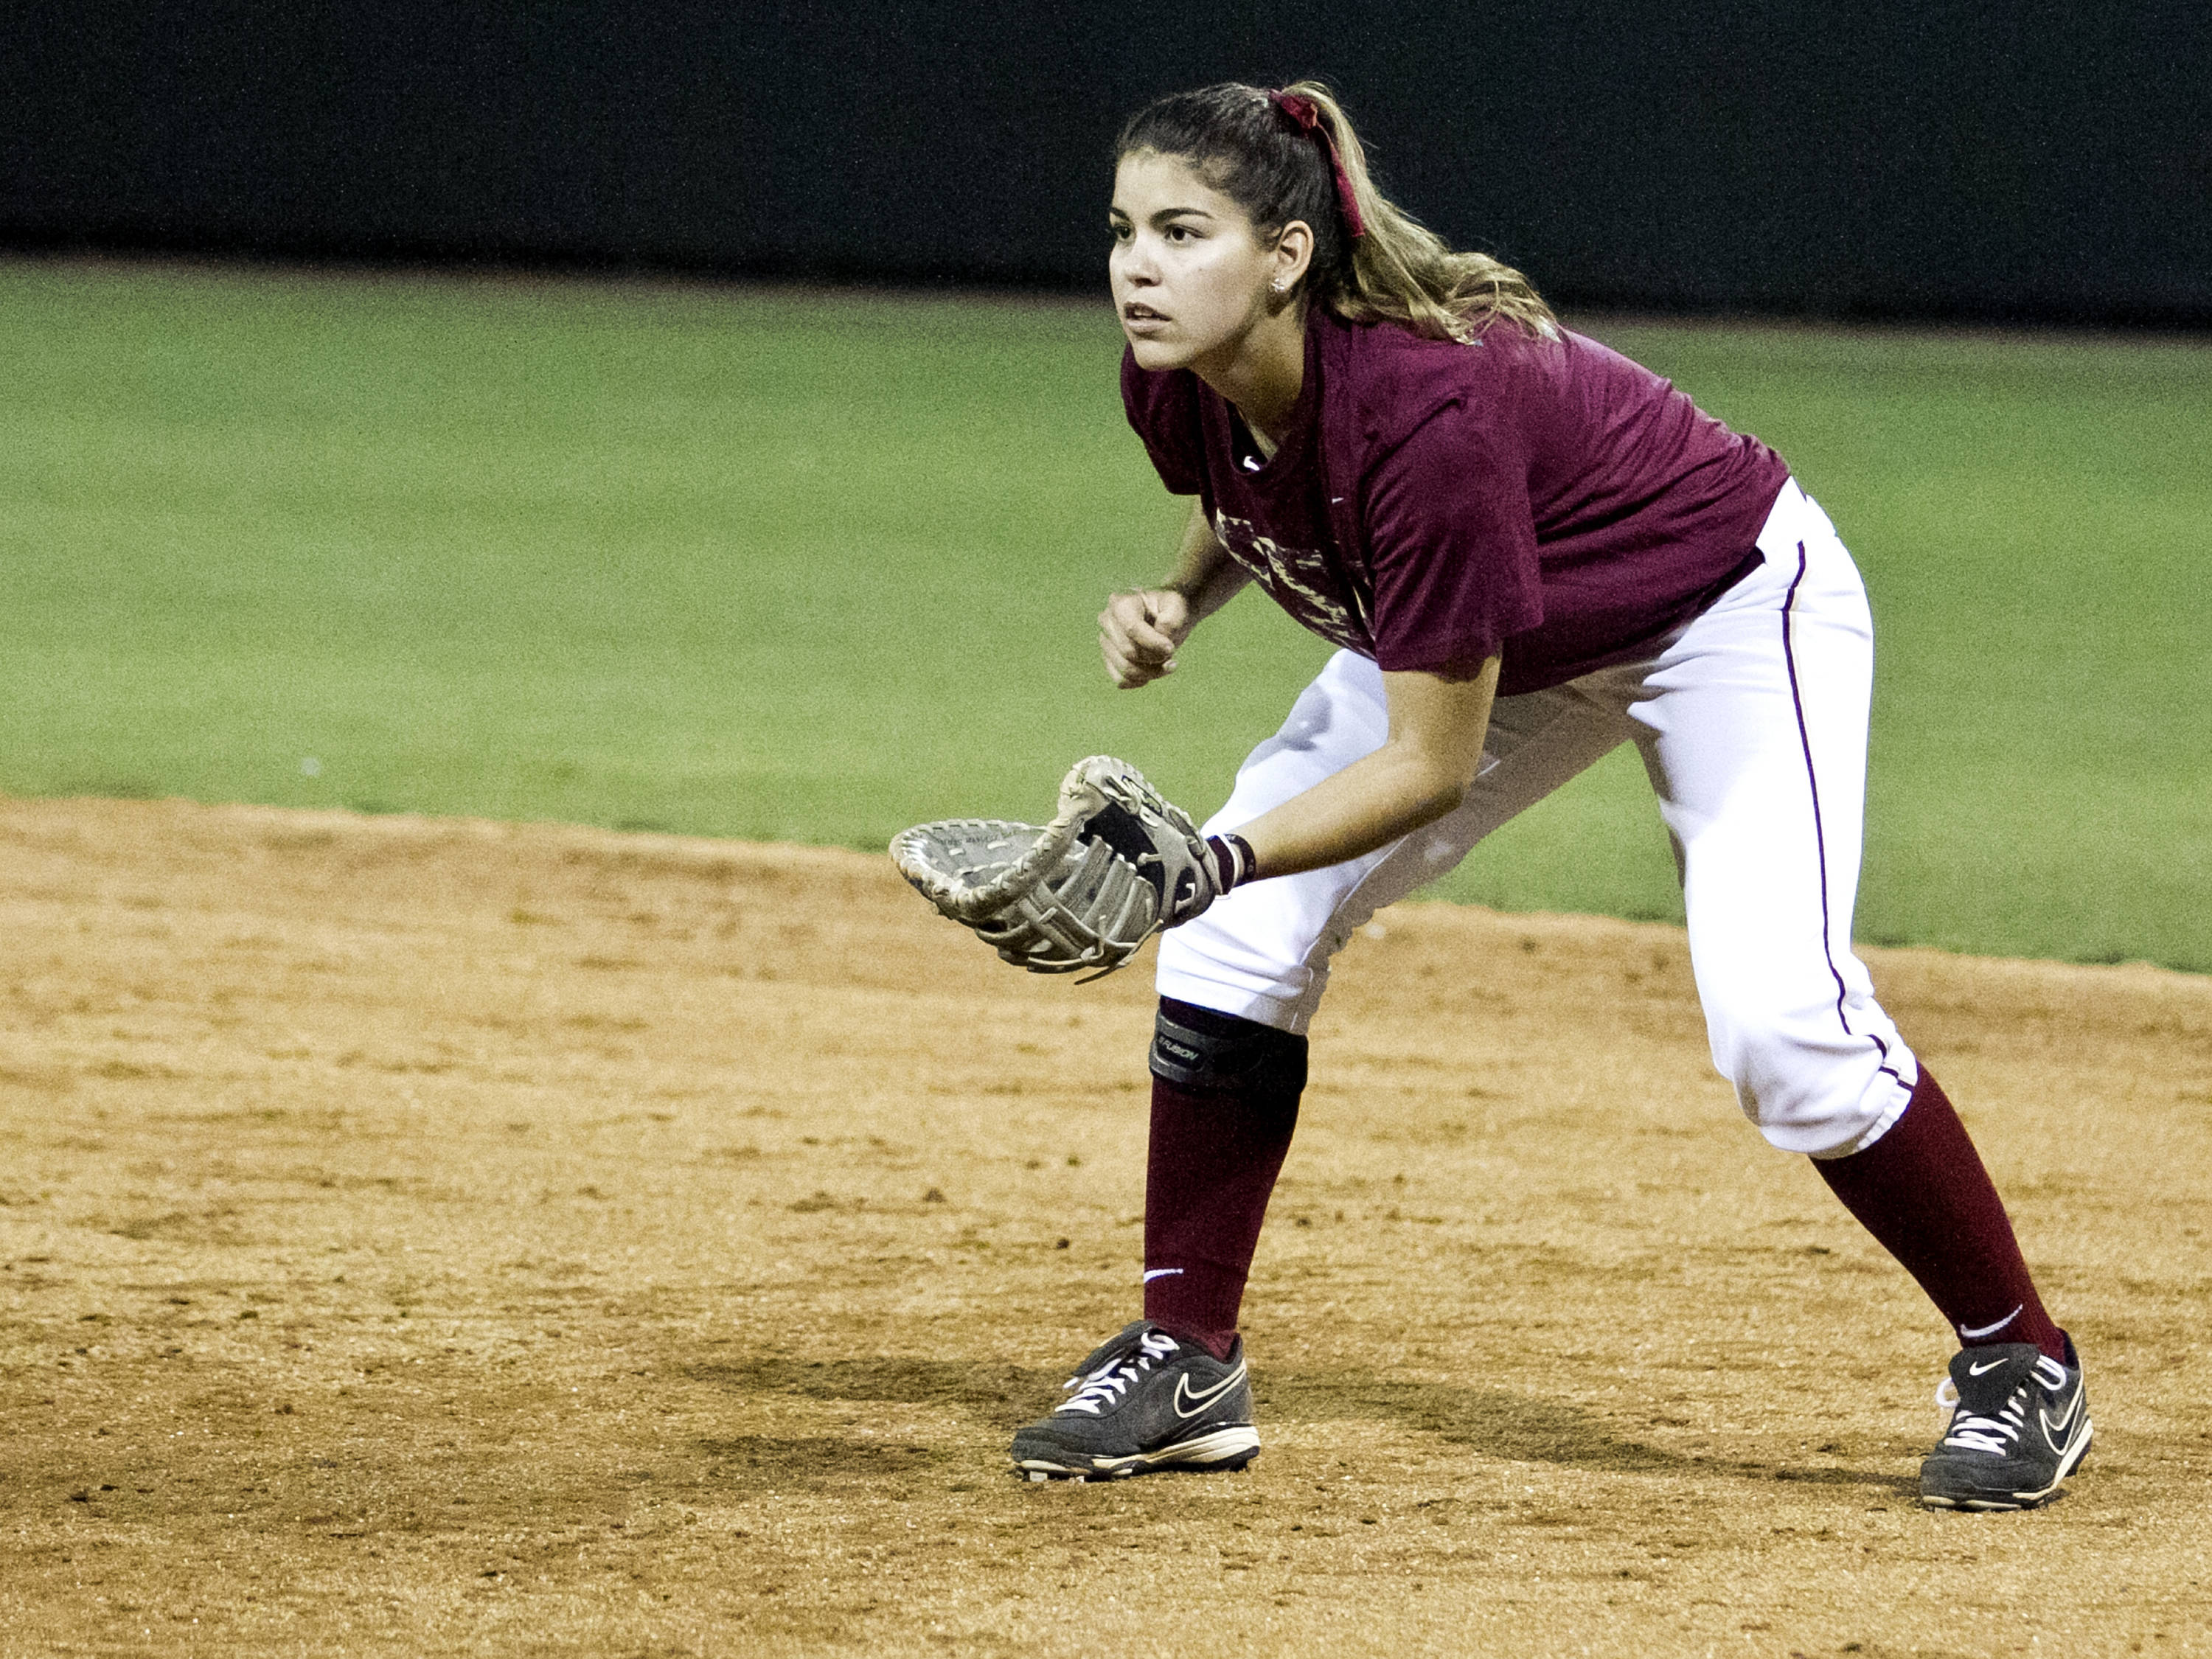 Evelyn Morgado, FSU Softball vs NC,  04/02/2012